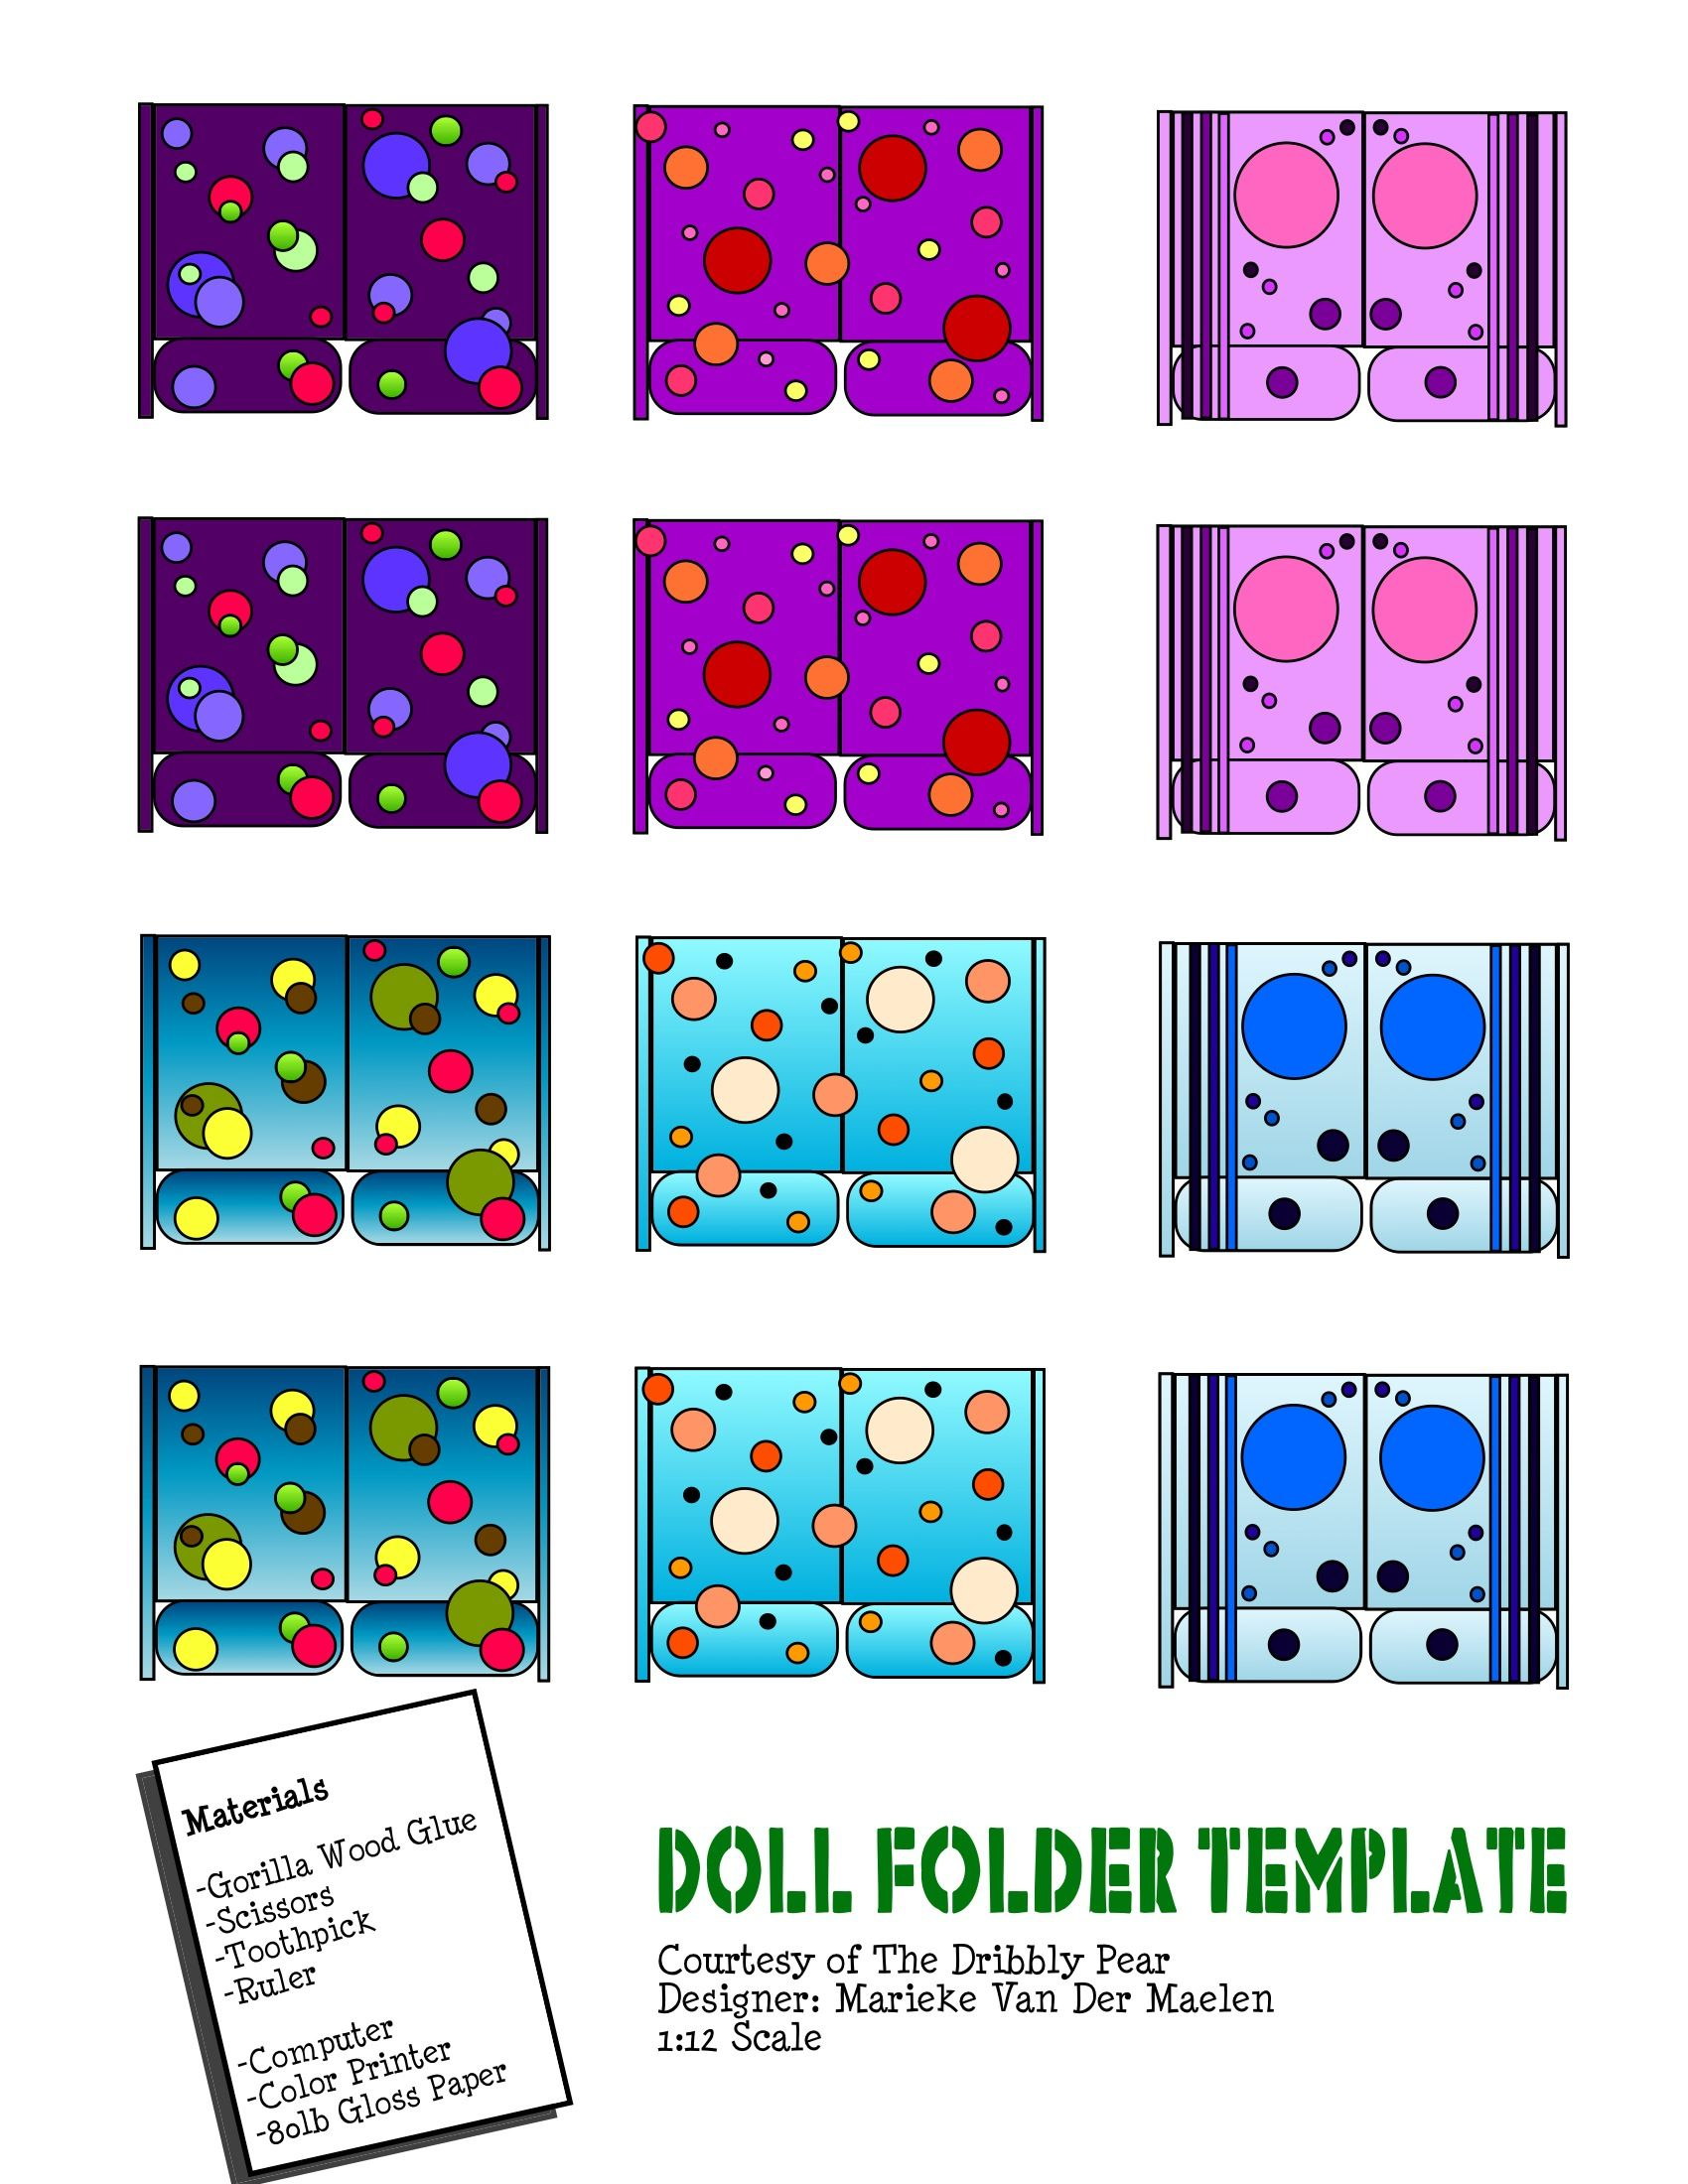 Free Two Pocket Folder School Supplies Template For 112 Scale